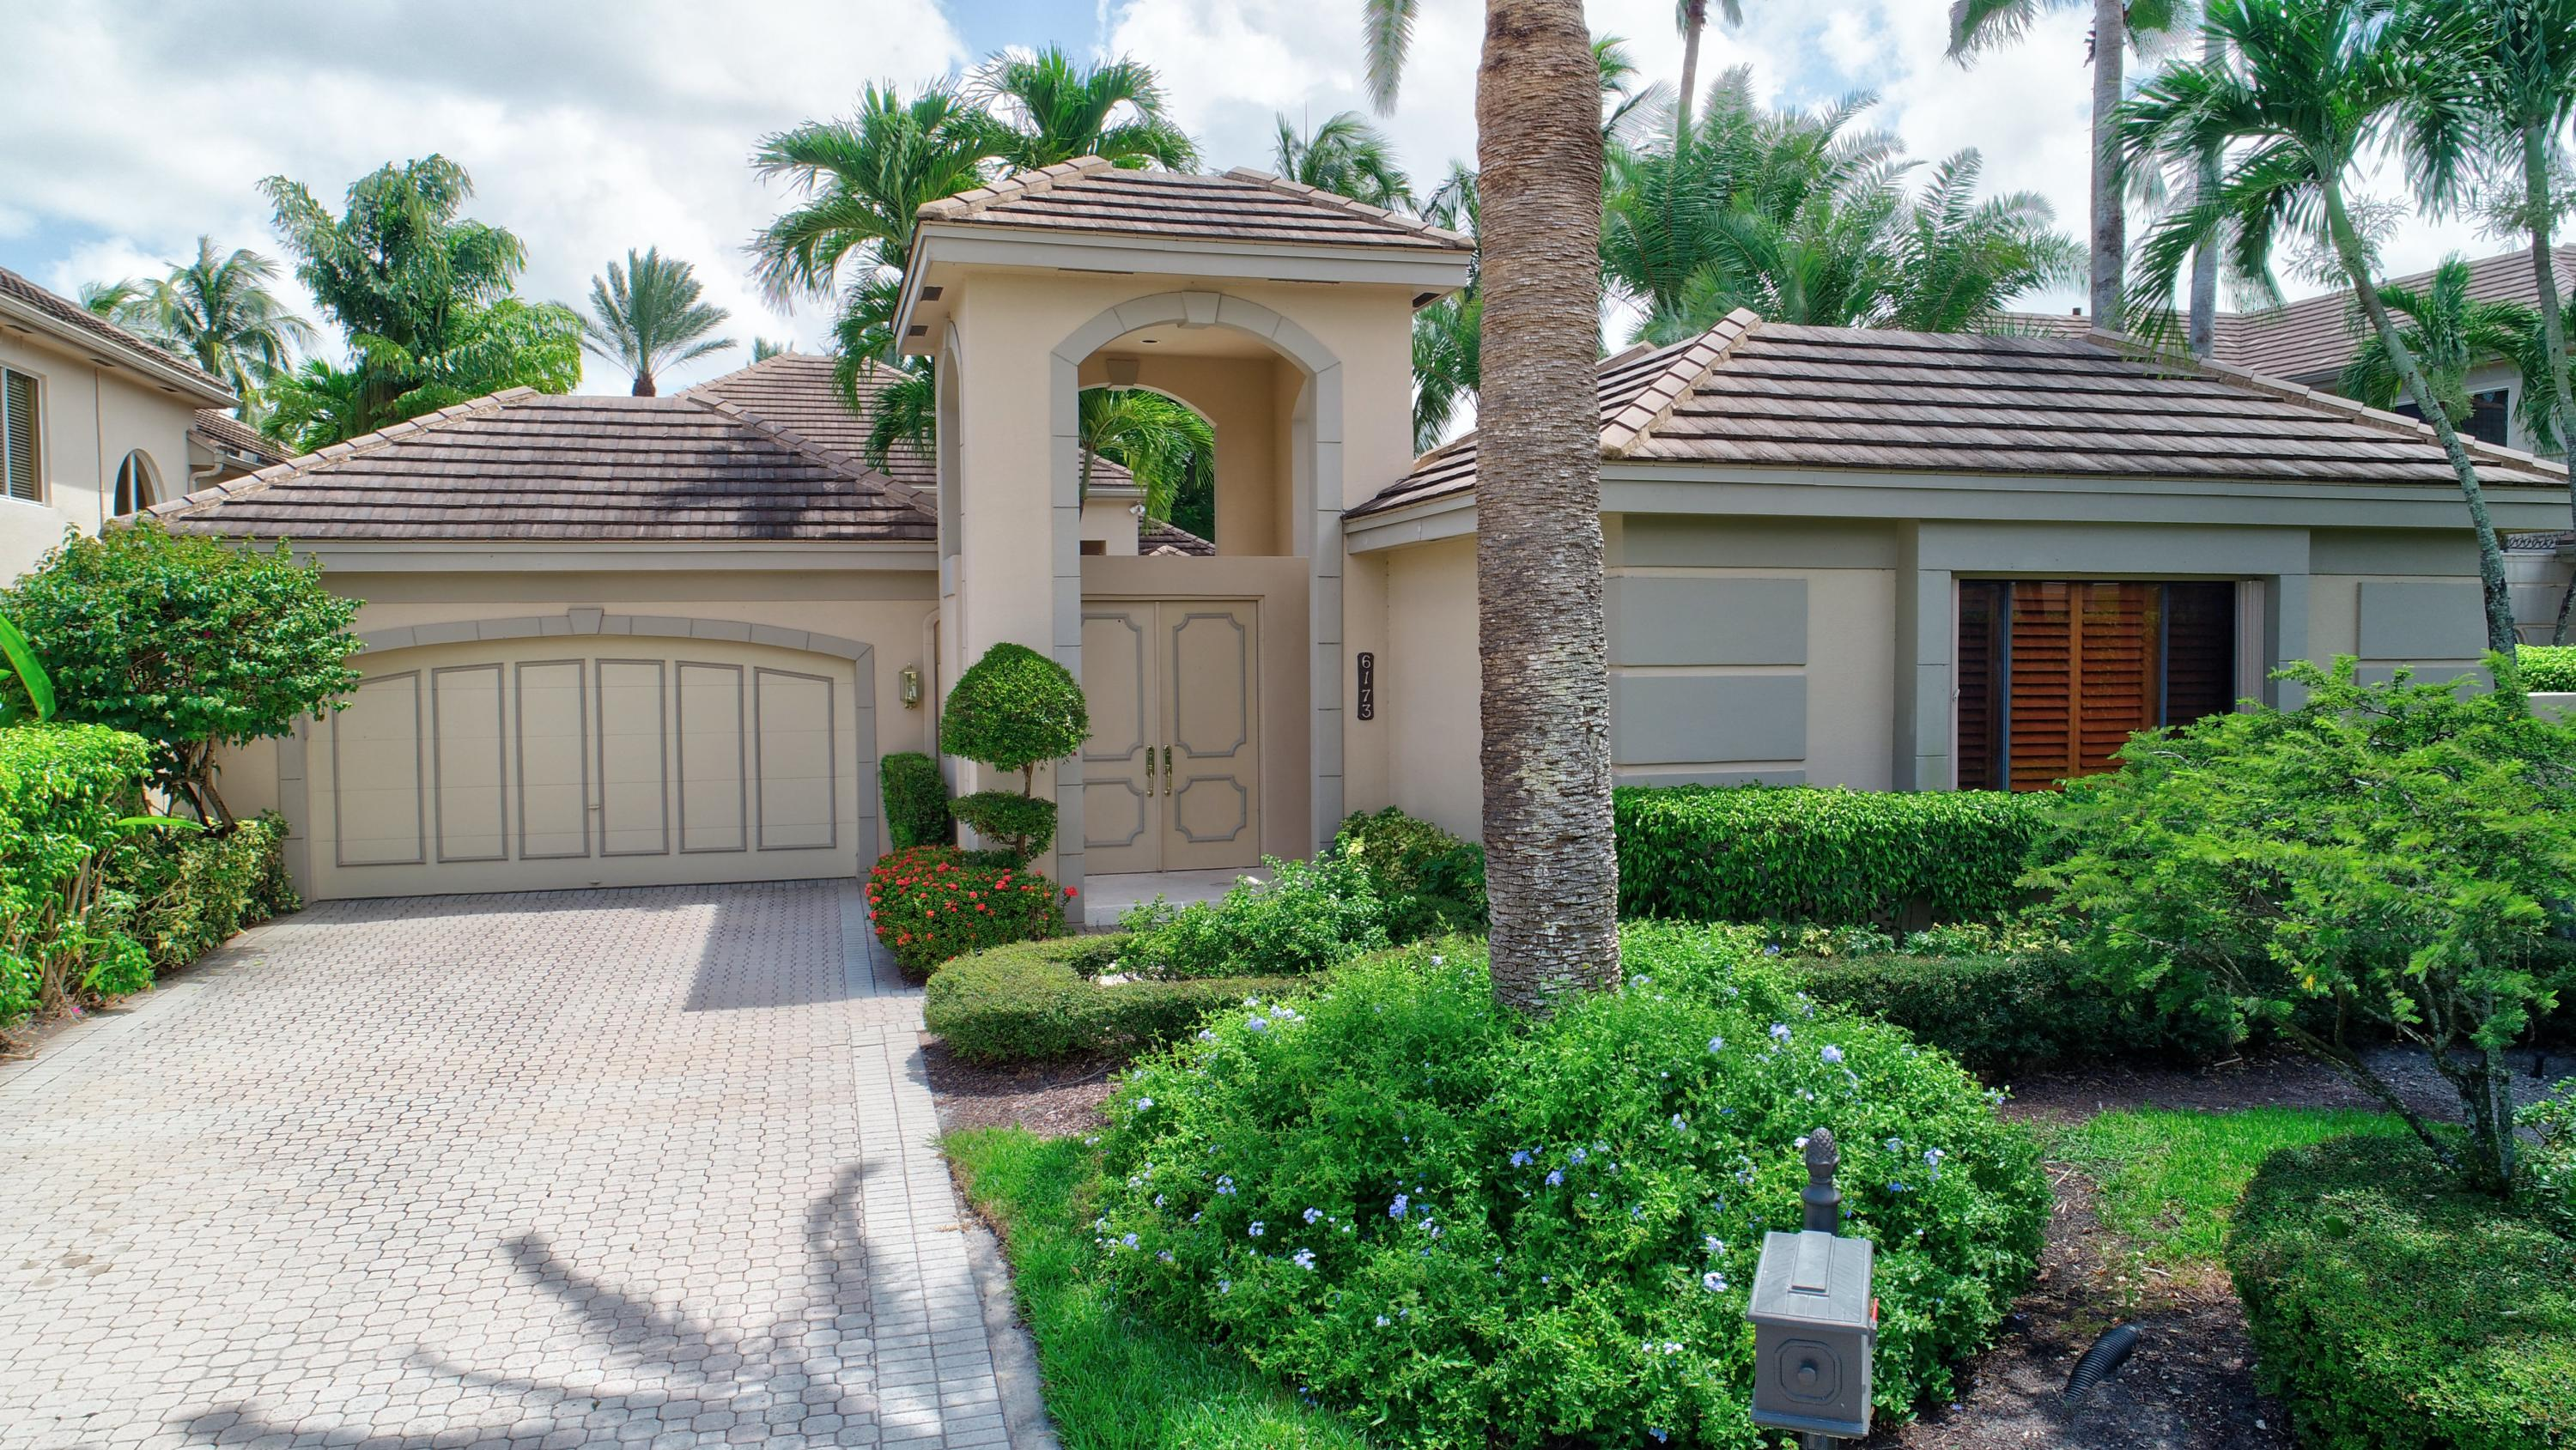 6173 Nw 24th Way Boca Raton, FL 33496